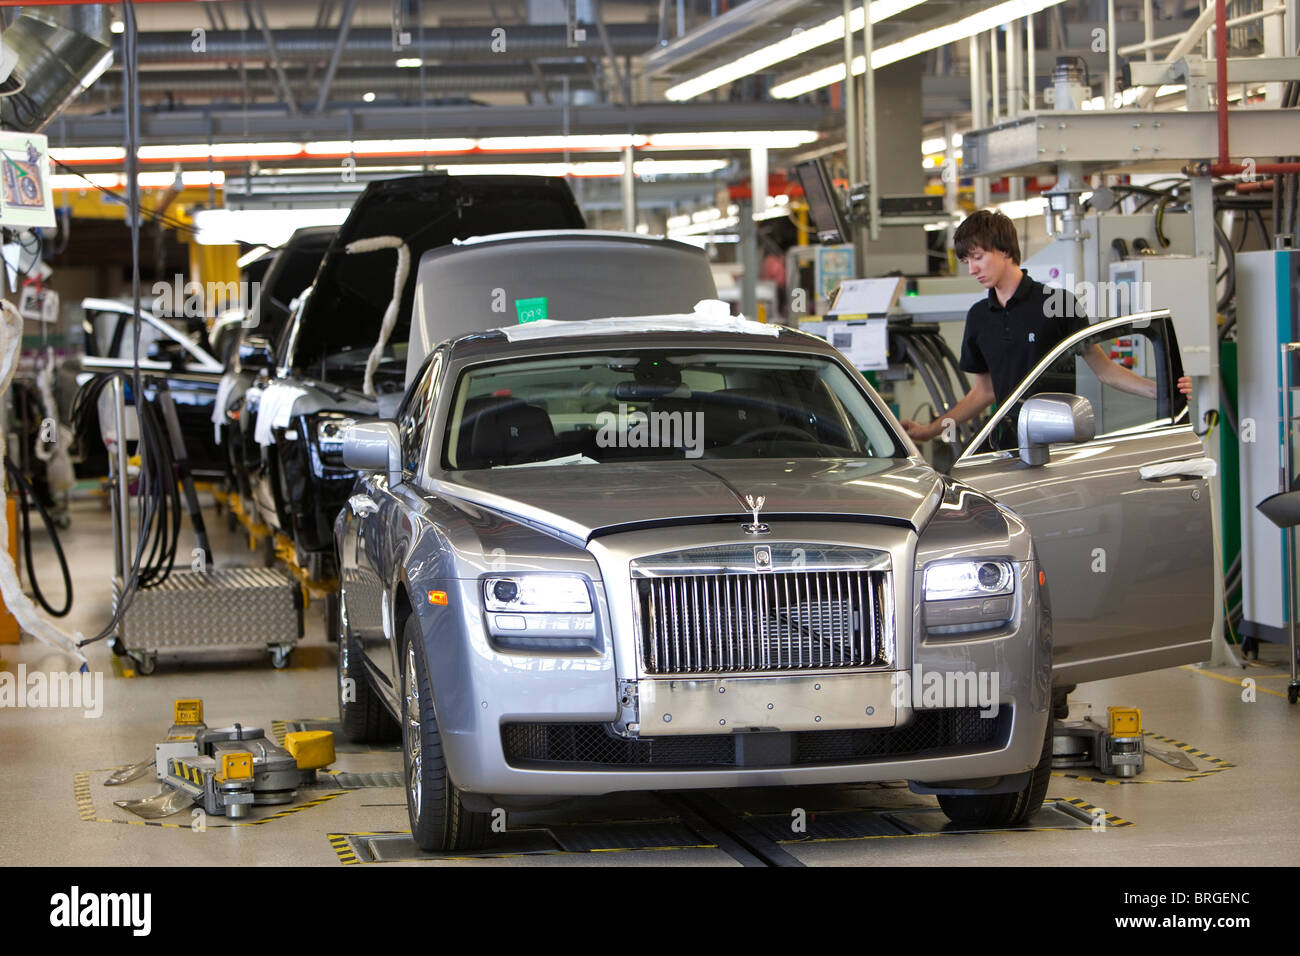 Rolls Royce factory in Goodwood, West Sussex UK Production line for Rolls Royce Phantom and Ghost cars. - Stock Image